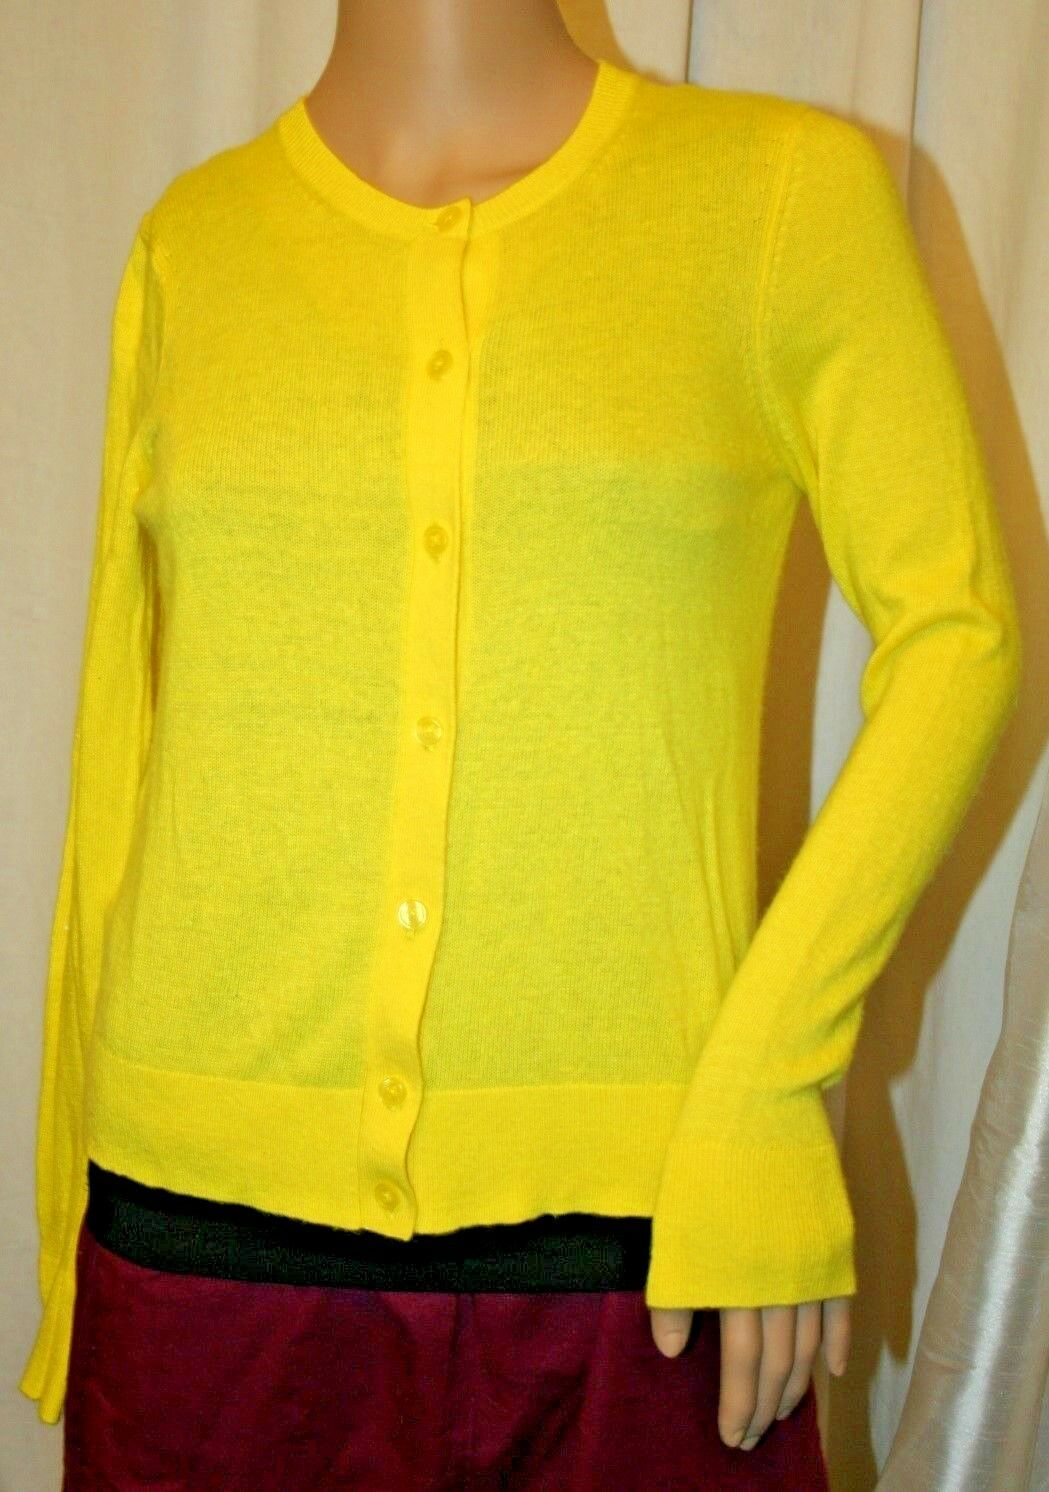 ANN TAYLOR BUTTON UP CARDIGAN LONG SLEEVE YELLOW SHRUG COVER UP S